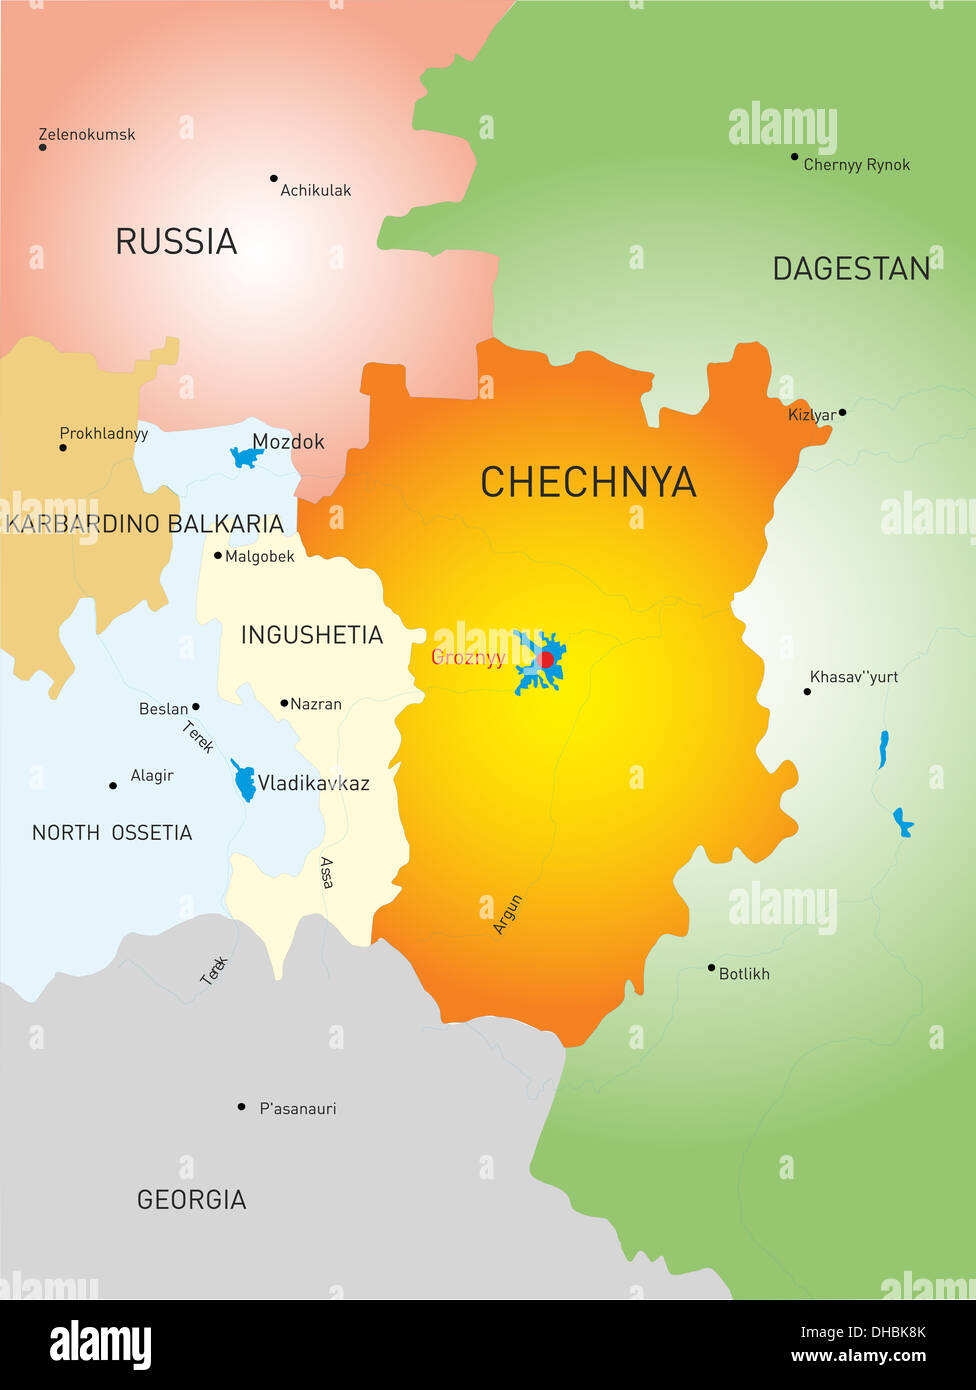 Chechen Republic country - Stock Image